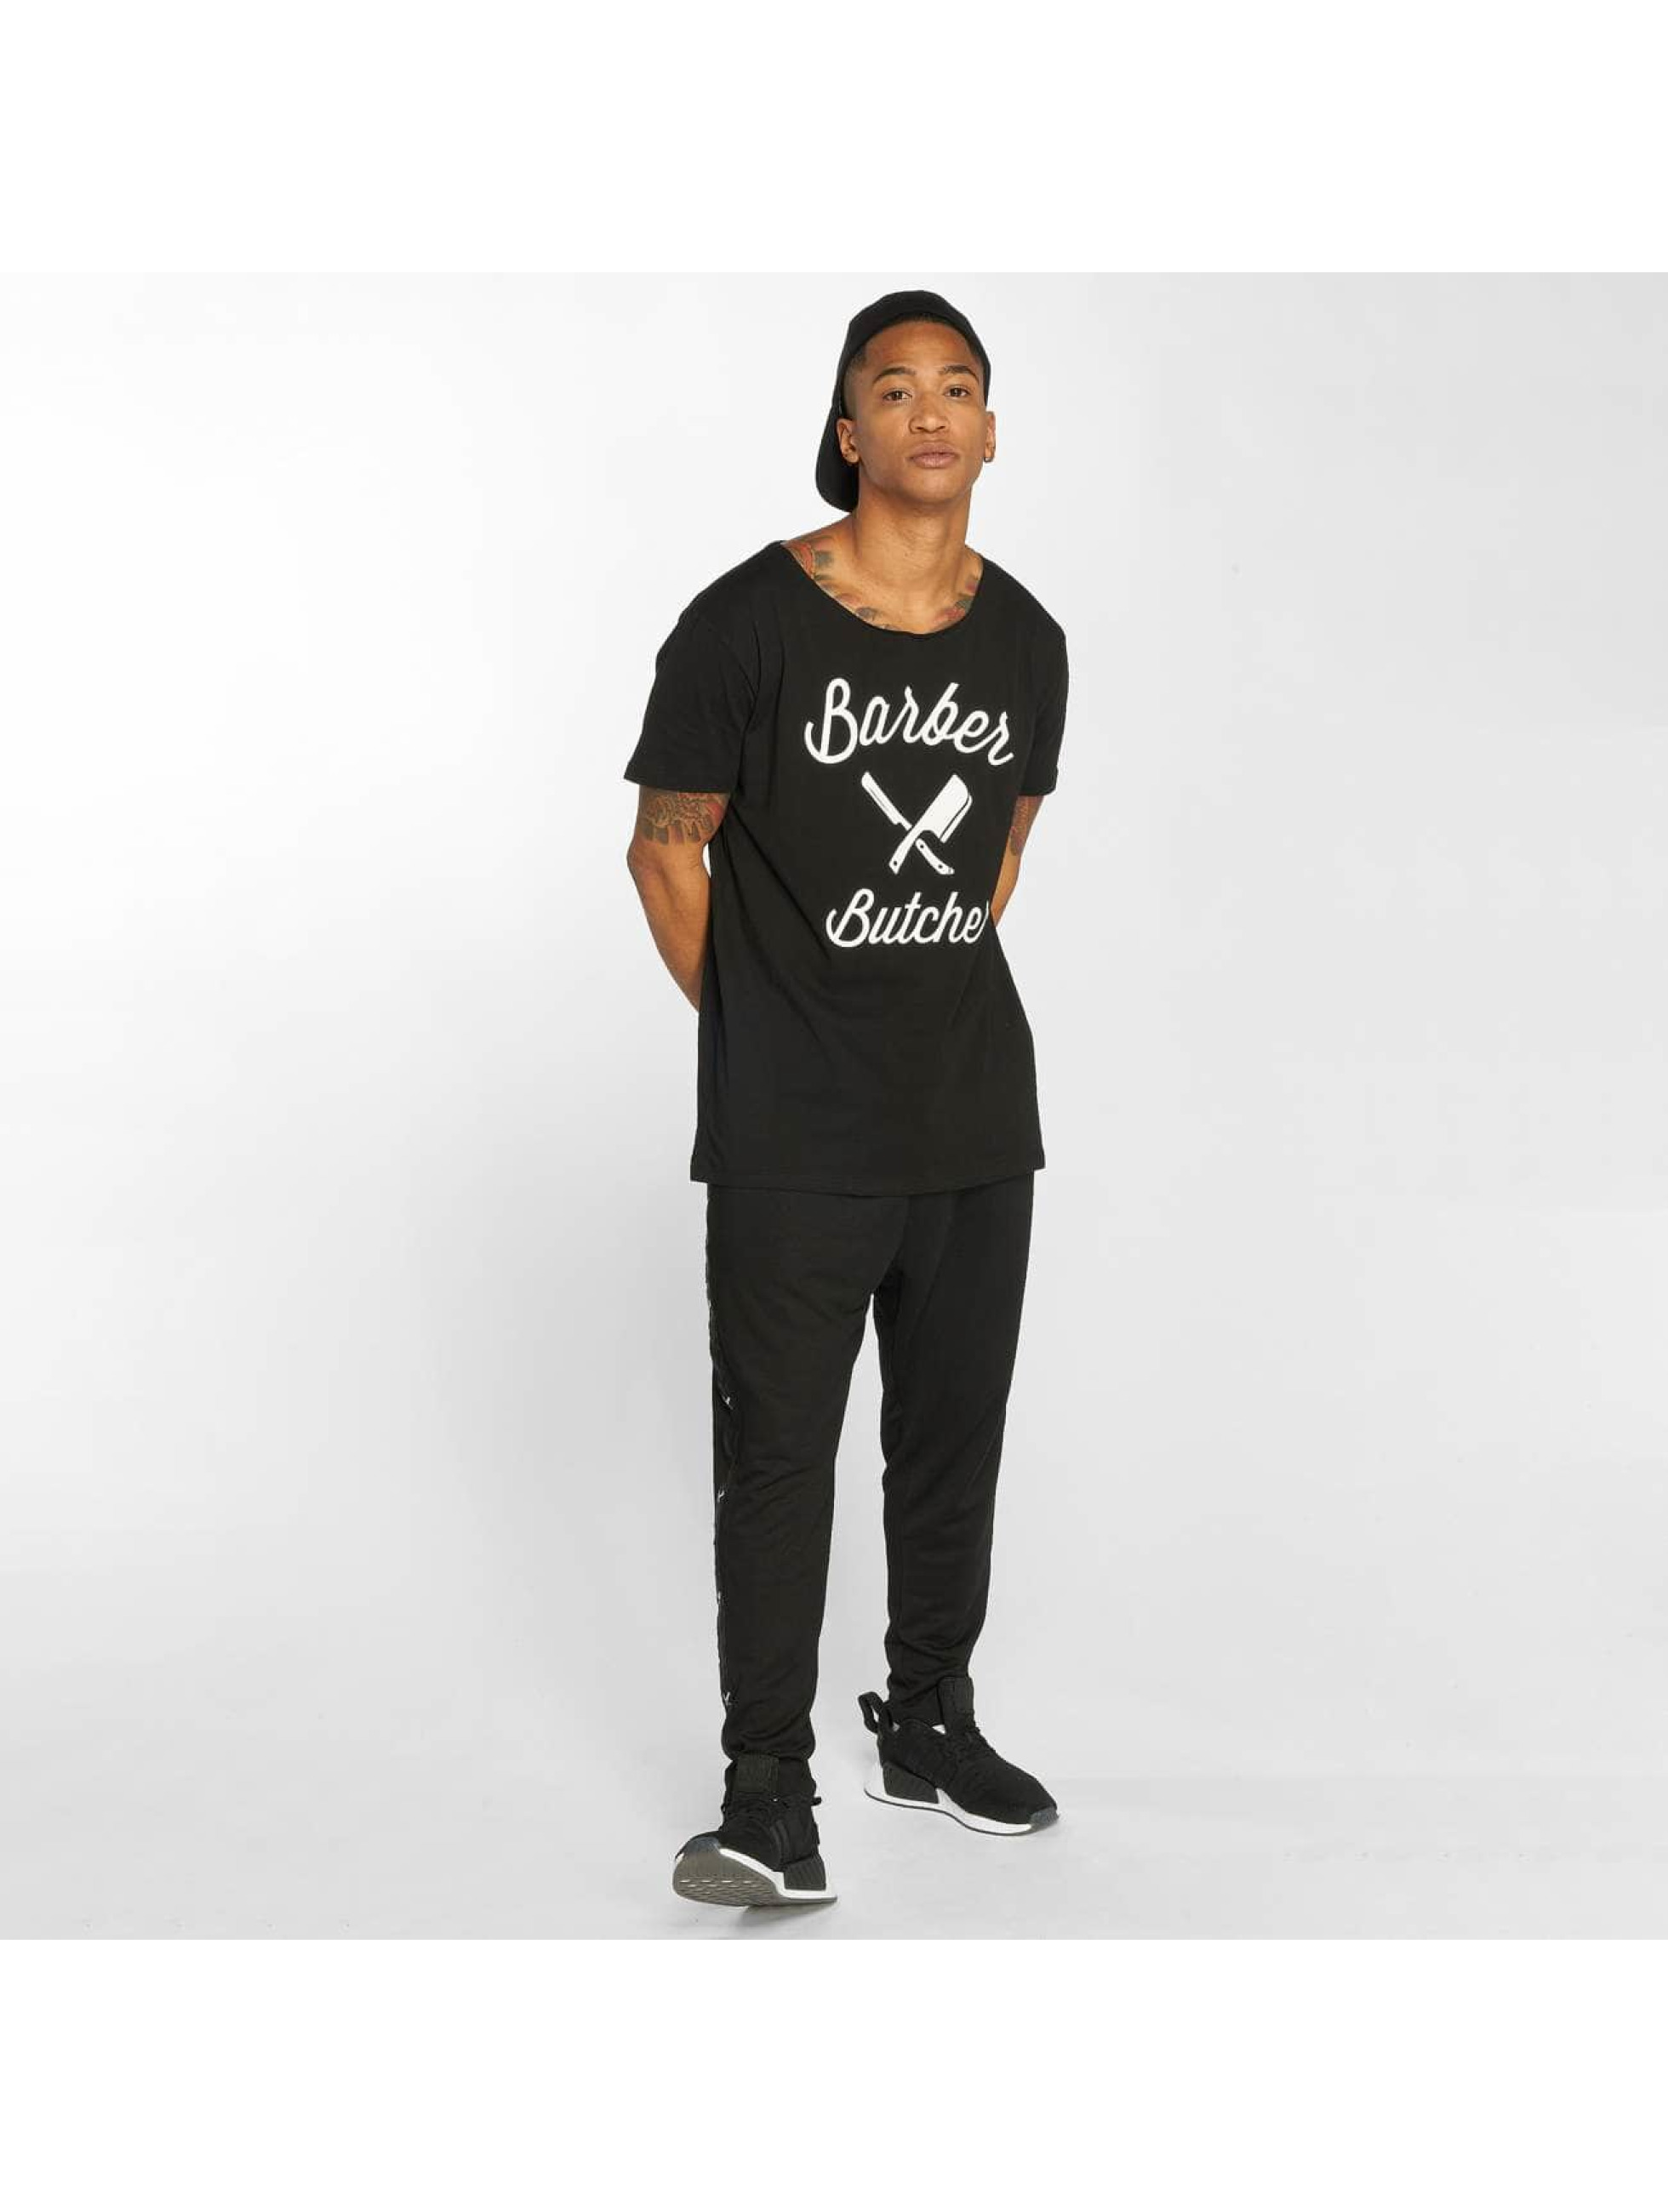 Distorted People T-shirts People BB Blades Cutted sort